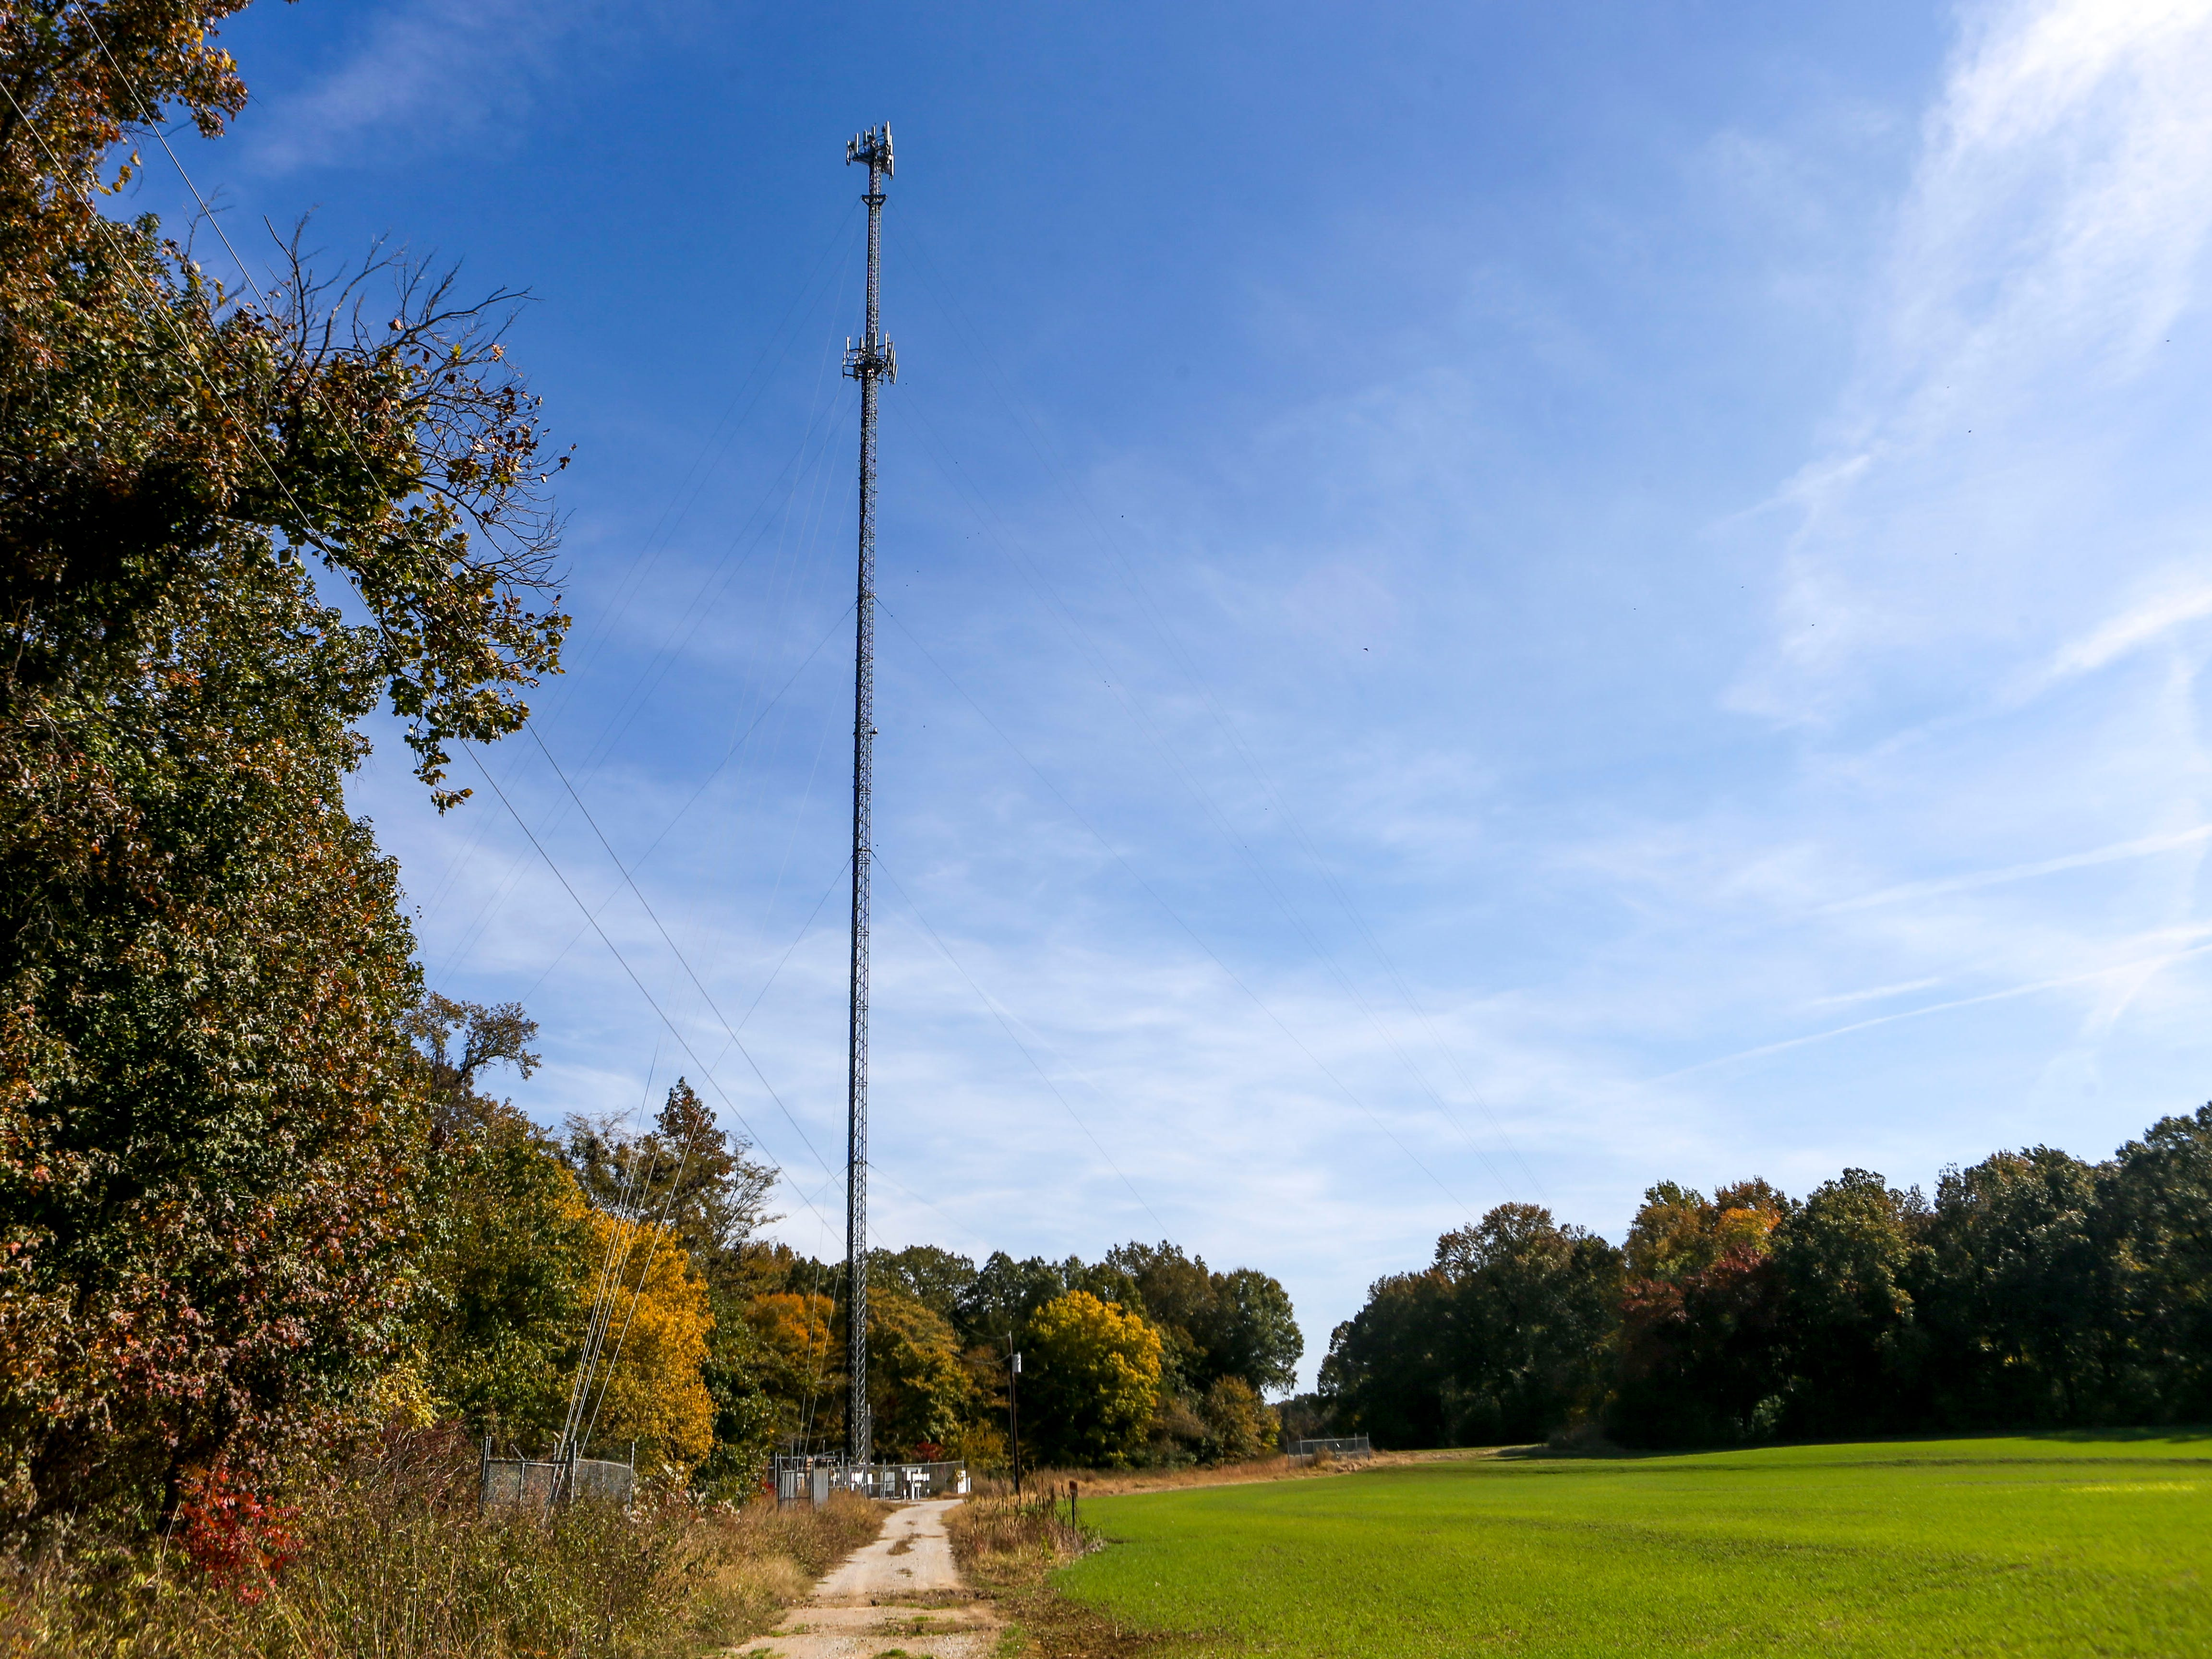 Down a dirt and gravel access road an AT&T tower thats been better equipped for wireless broadband internet can be seen during a ceremonial opening for the expansion of wireless broadband coverage through AT&T cell towers at 4567 Brownsville Hwy in Denmark, Tenn., on Tuesday, Oct. 30, 2018.